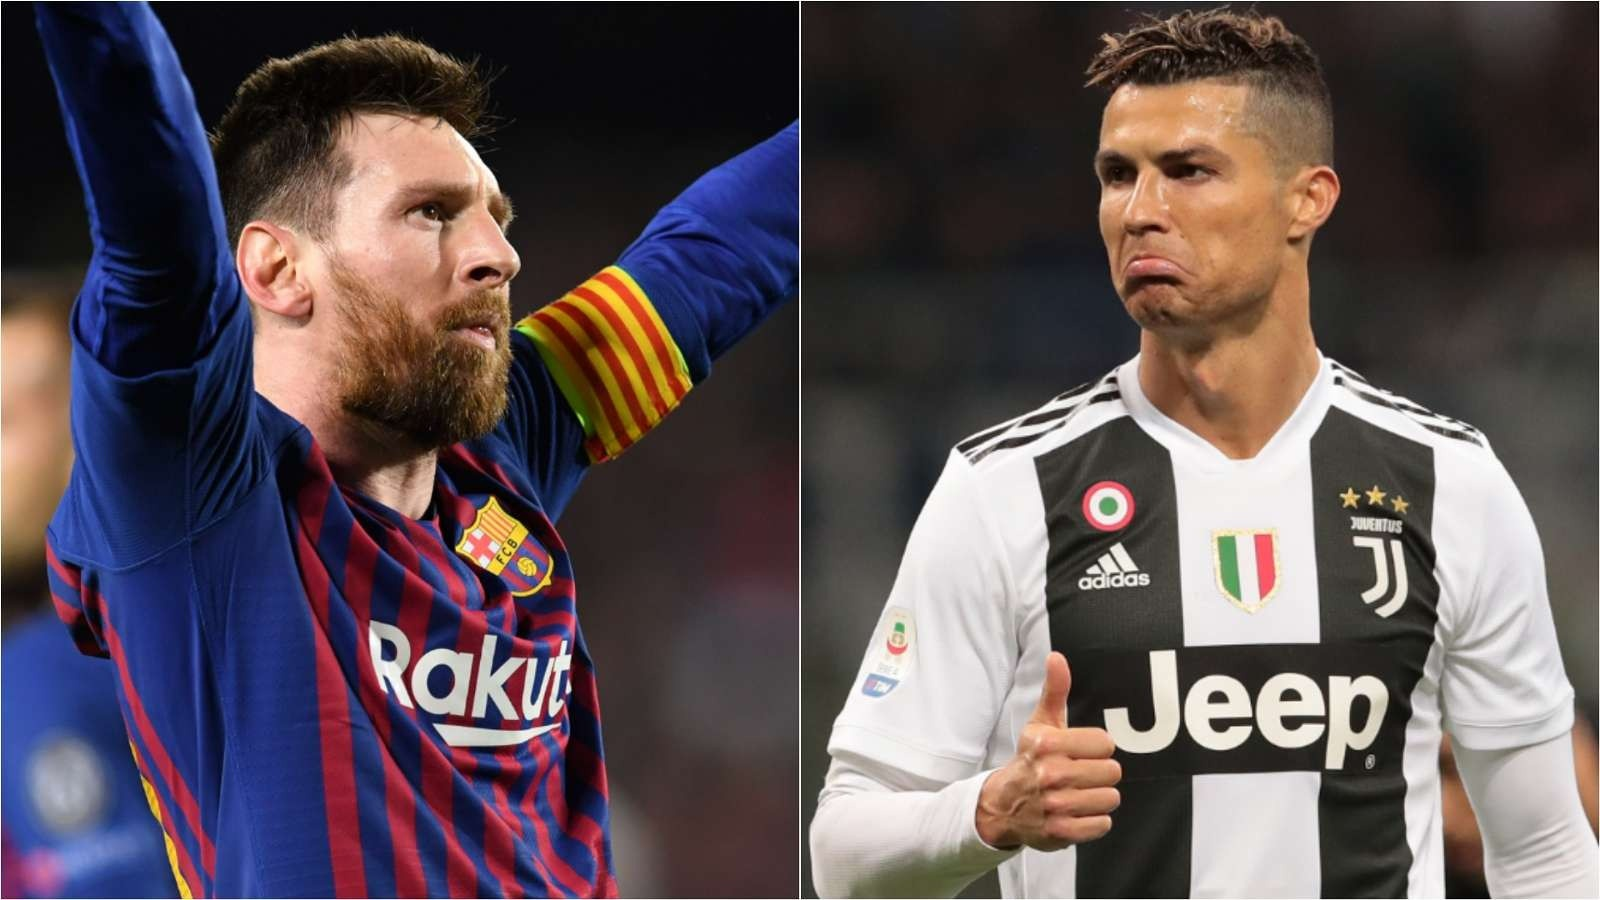 Wayne Rooney go for Lionel Messi over Cristiano Ronaldo as world's best player